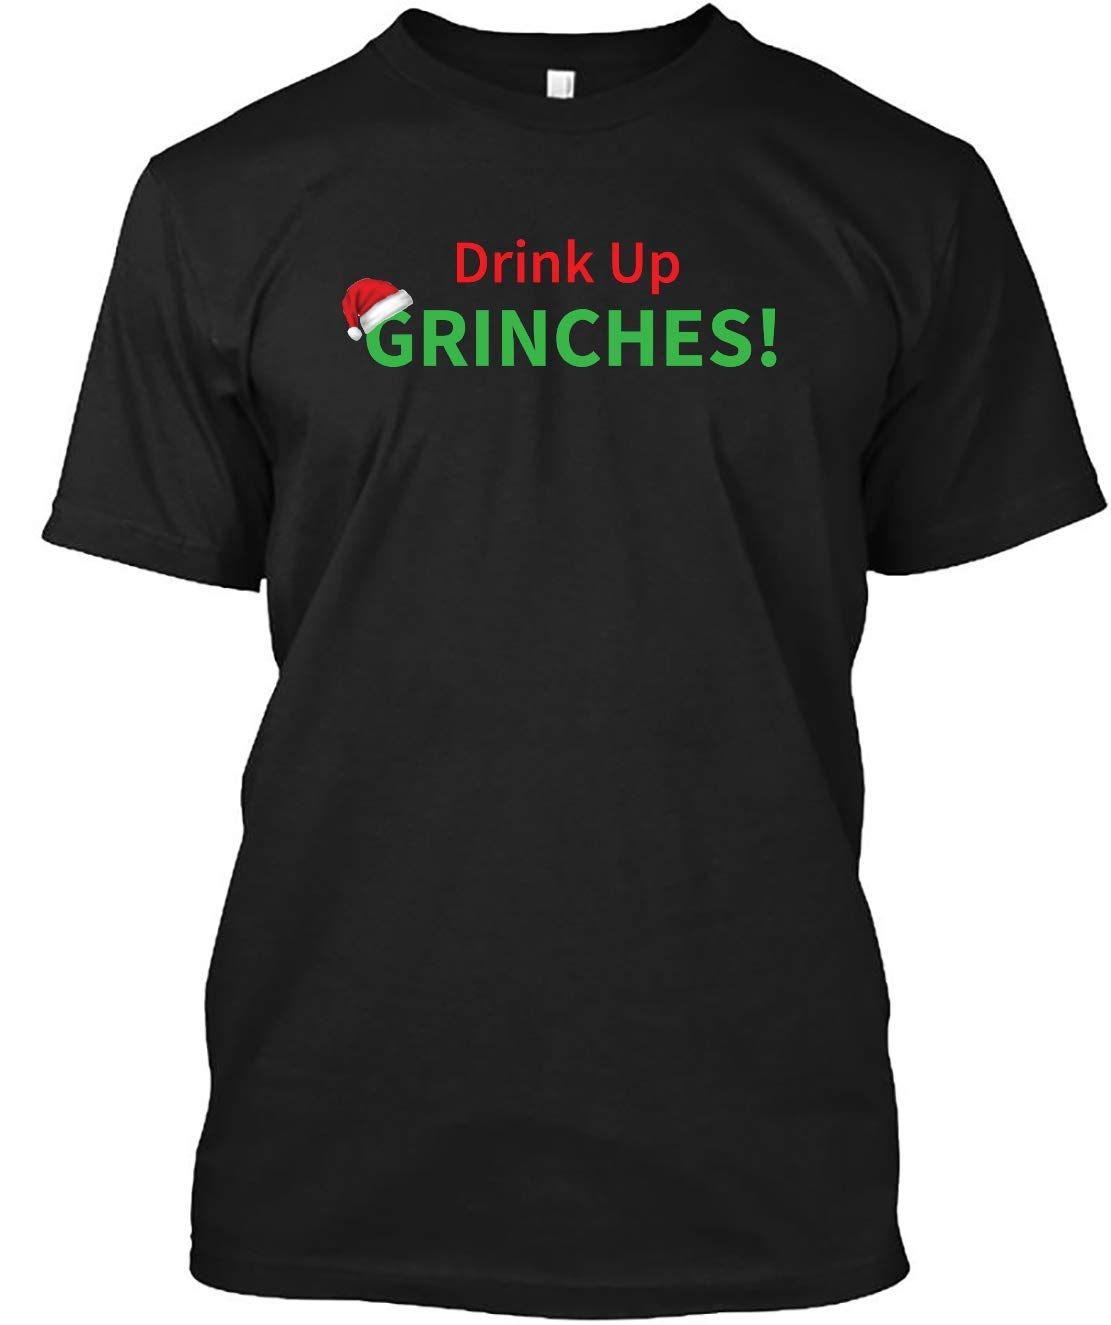 Drink Up Grinches Christmas Holiday Design Nonallergenic Tshirts For Boy & Girl Short Sleeve (unisex Tees)